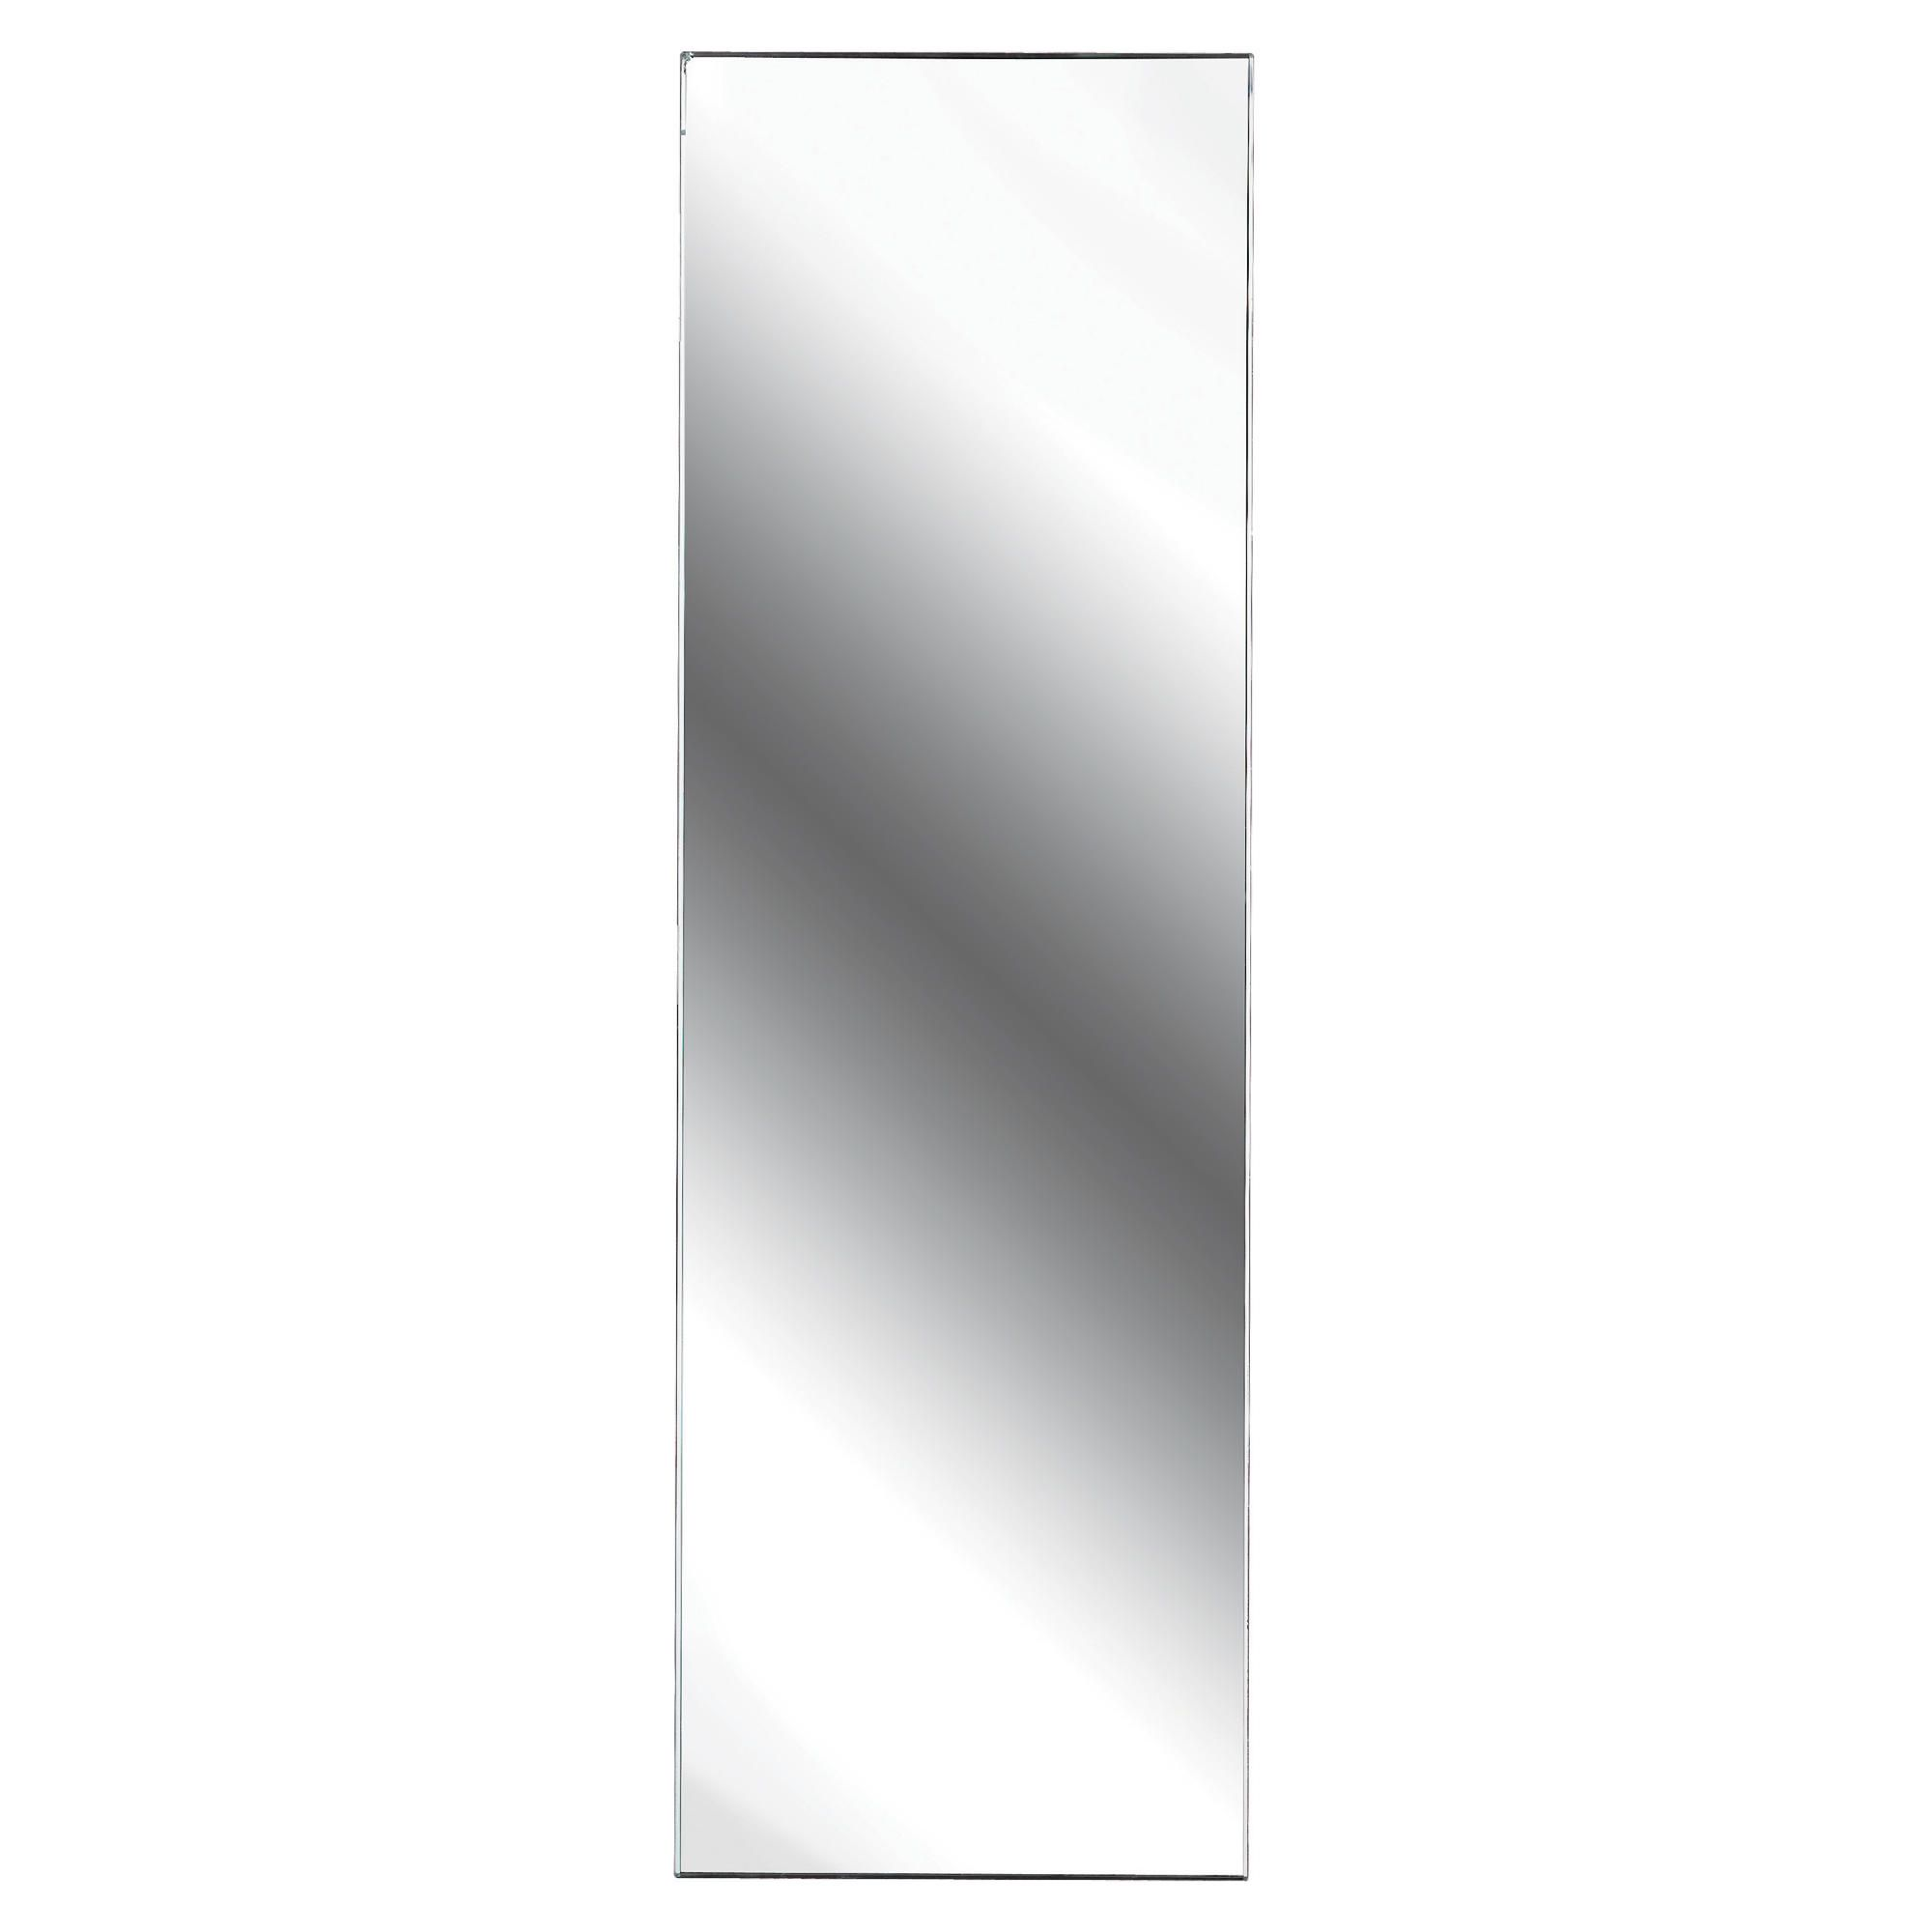 Other High Gloss White Mirrored Single Door Polar Bathroom Cabinet